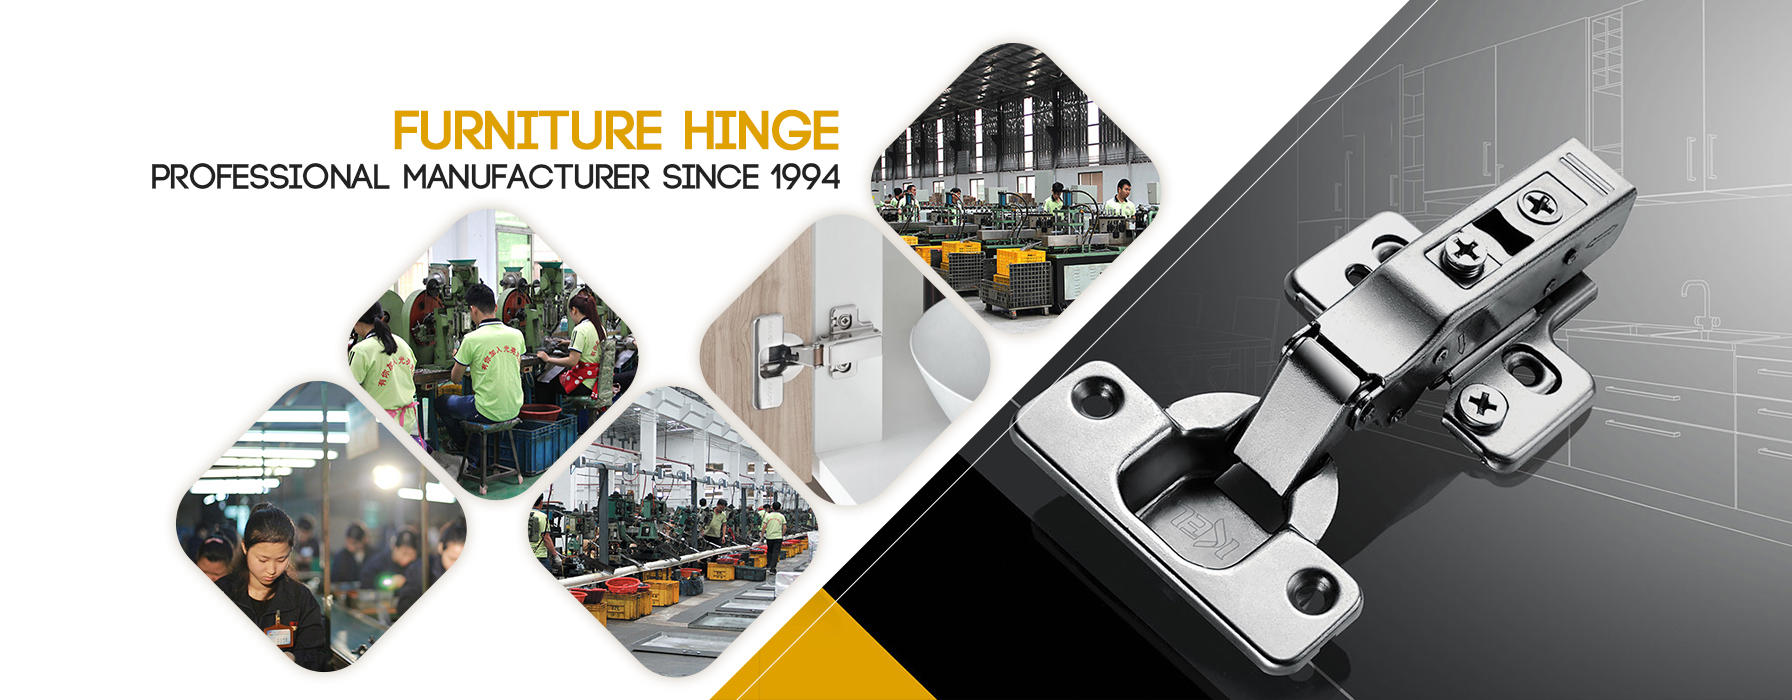 hinge manufacturers, hinge suppliers, kitchen cabinet hinges suppliers